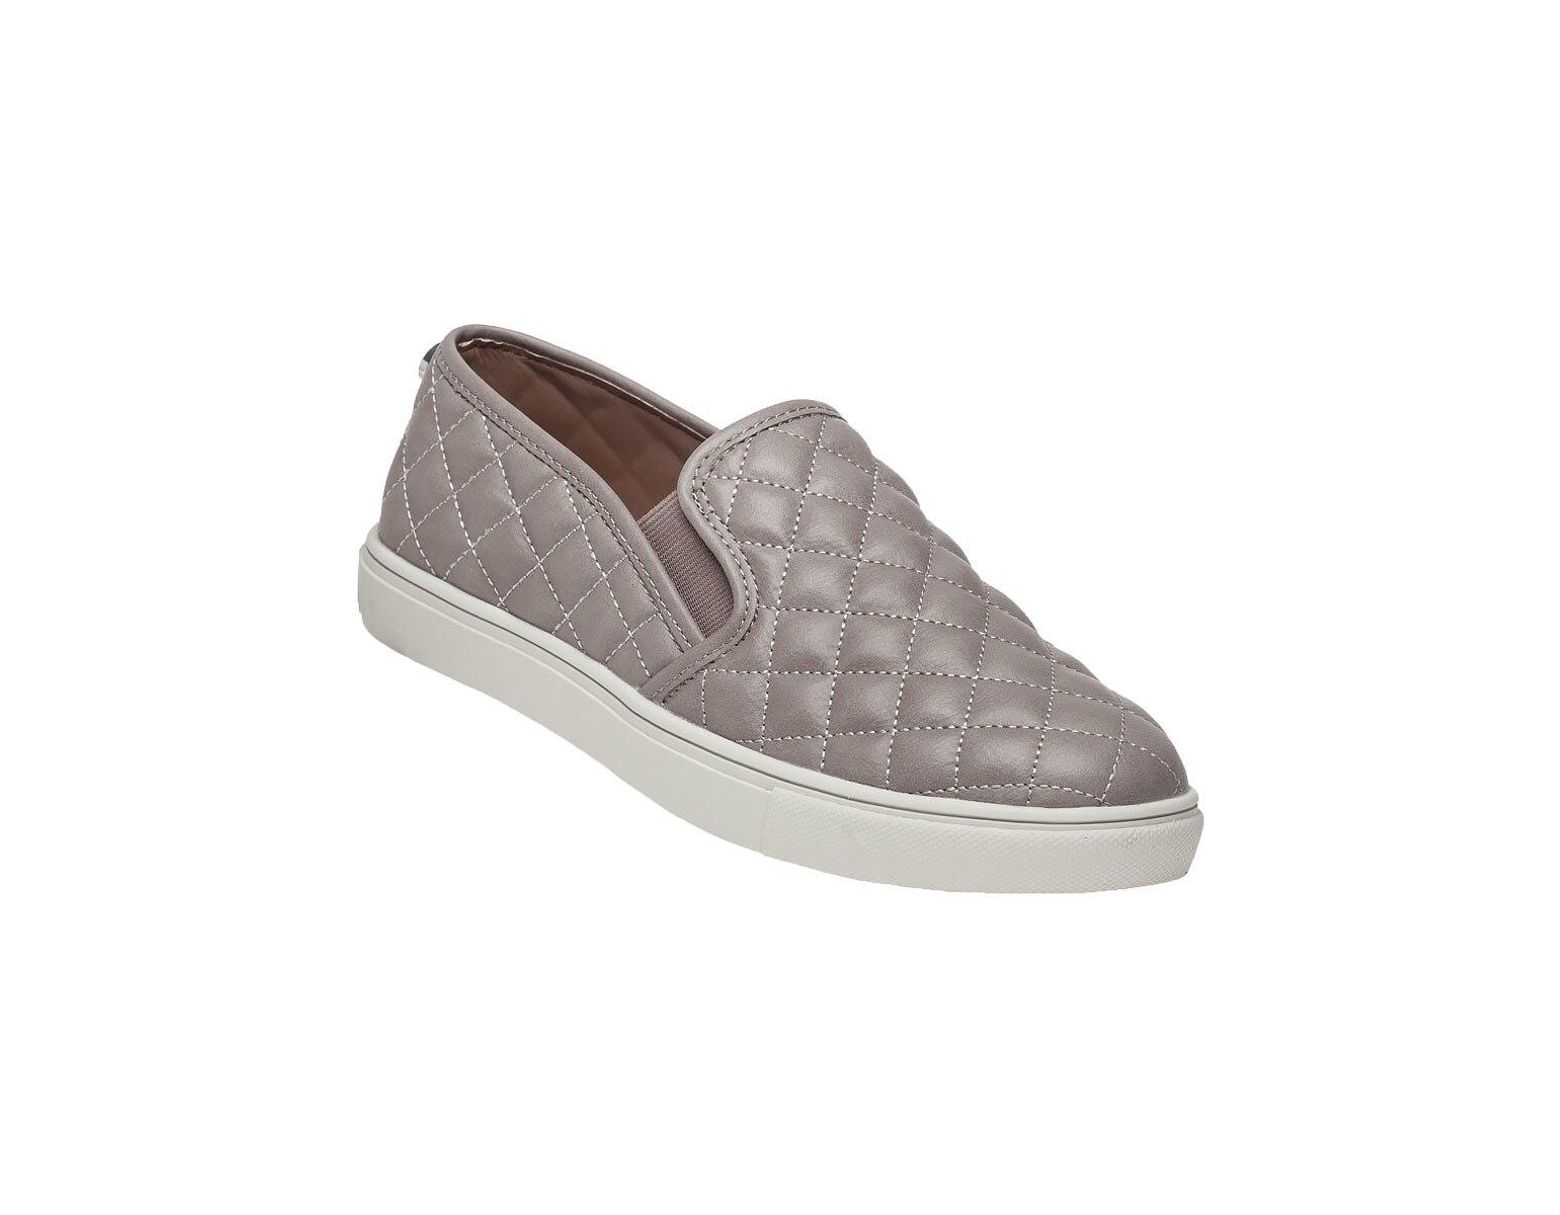 310c4a48906 Women's Ecentrcq Gray Quilted Slip-on Sneaker